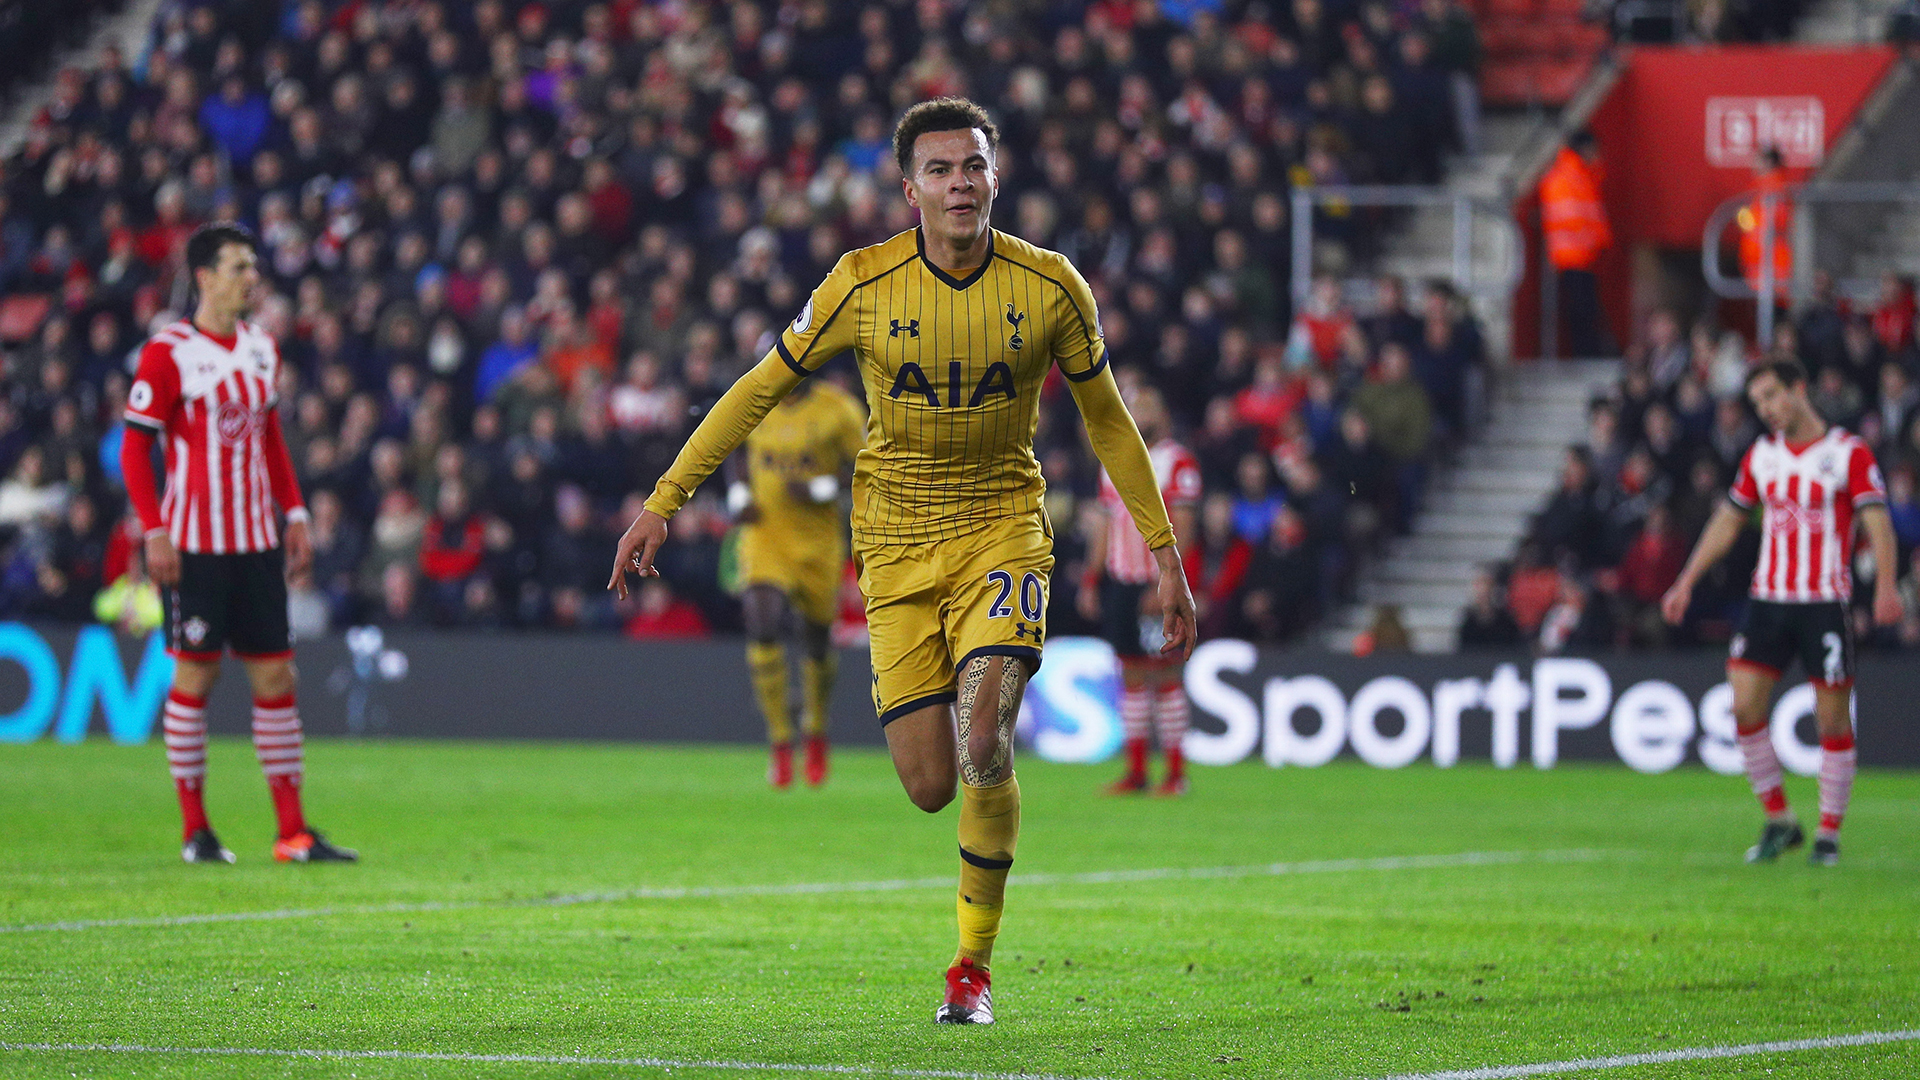 Dele Alli has the arrogance of a young Steven Gerrard and is worth more than £50 million- Redknapp